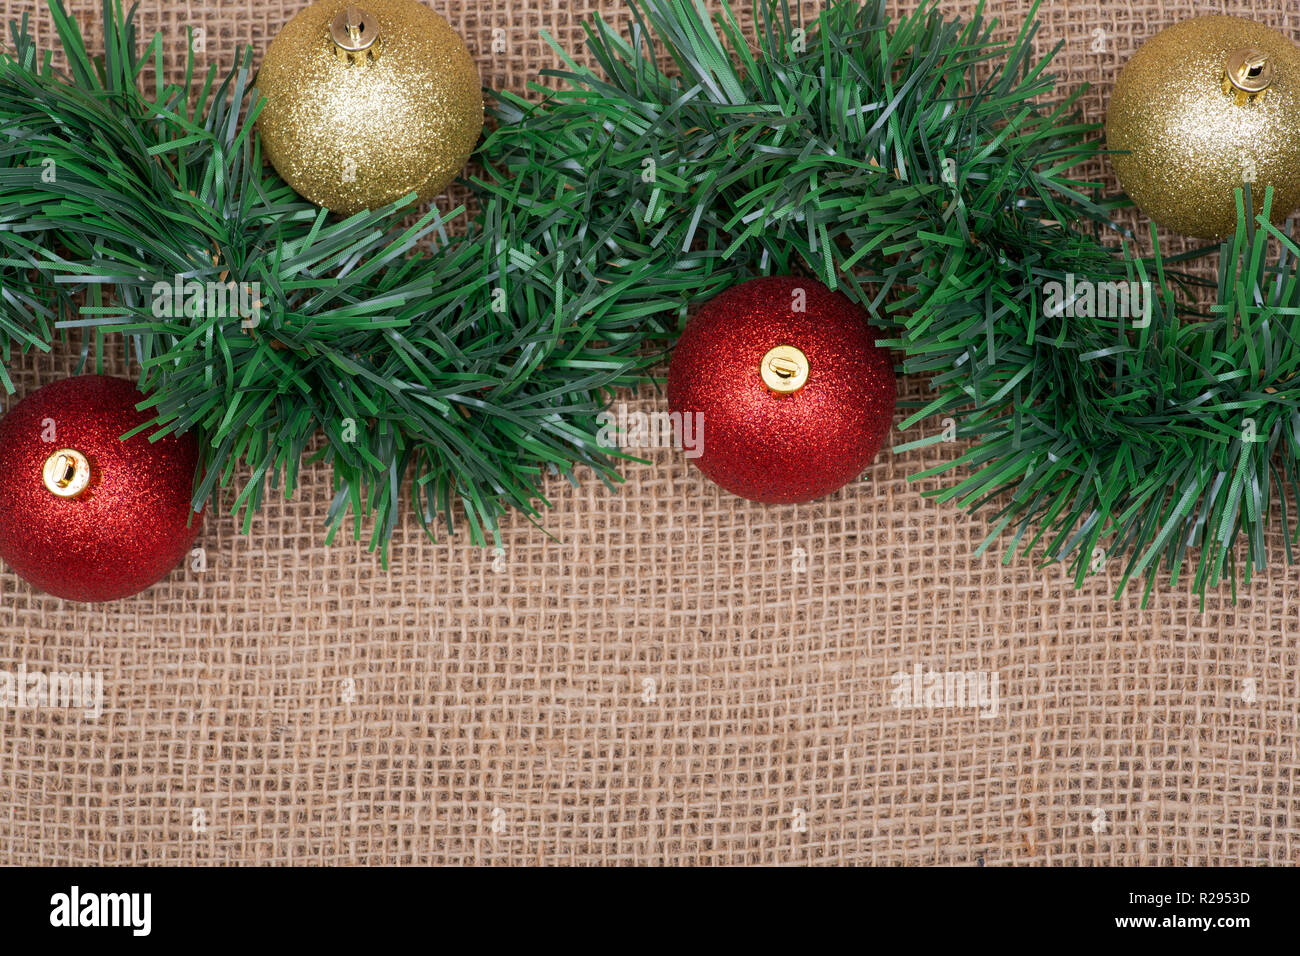 Winter Holiday Decoration Green Garland And Christmas Tree Balls On Burlap Background Stock Photo Alamy